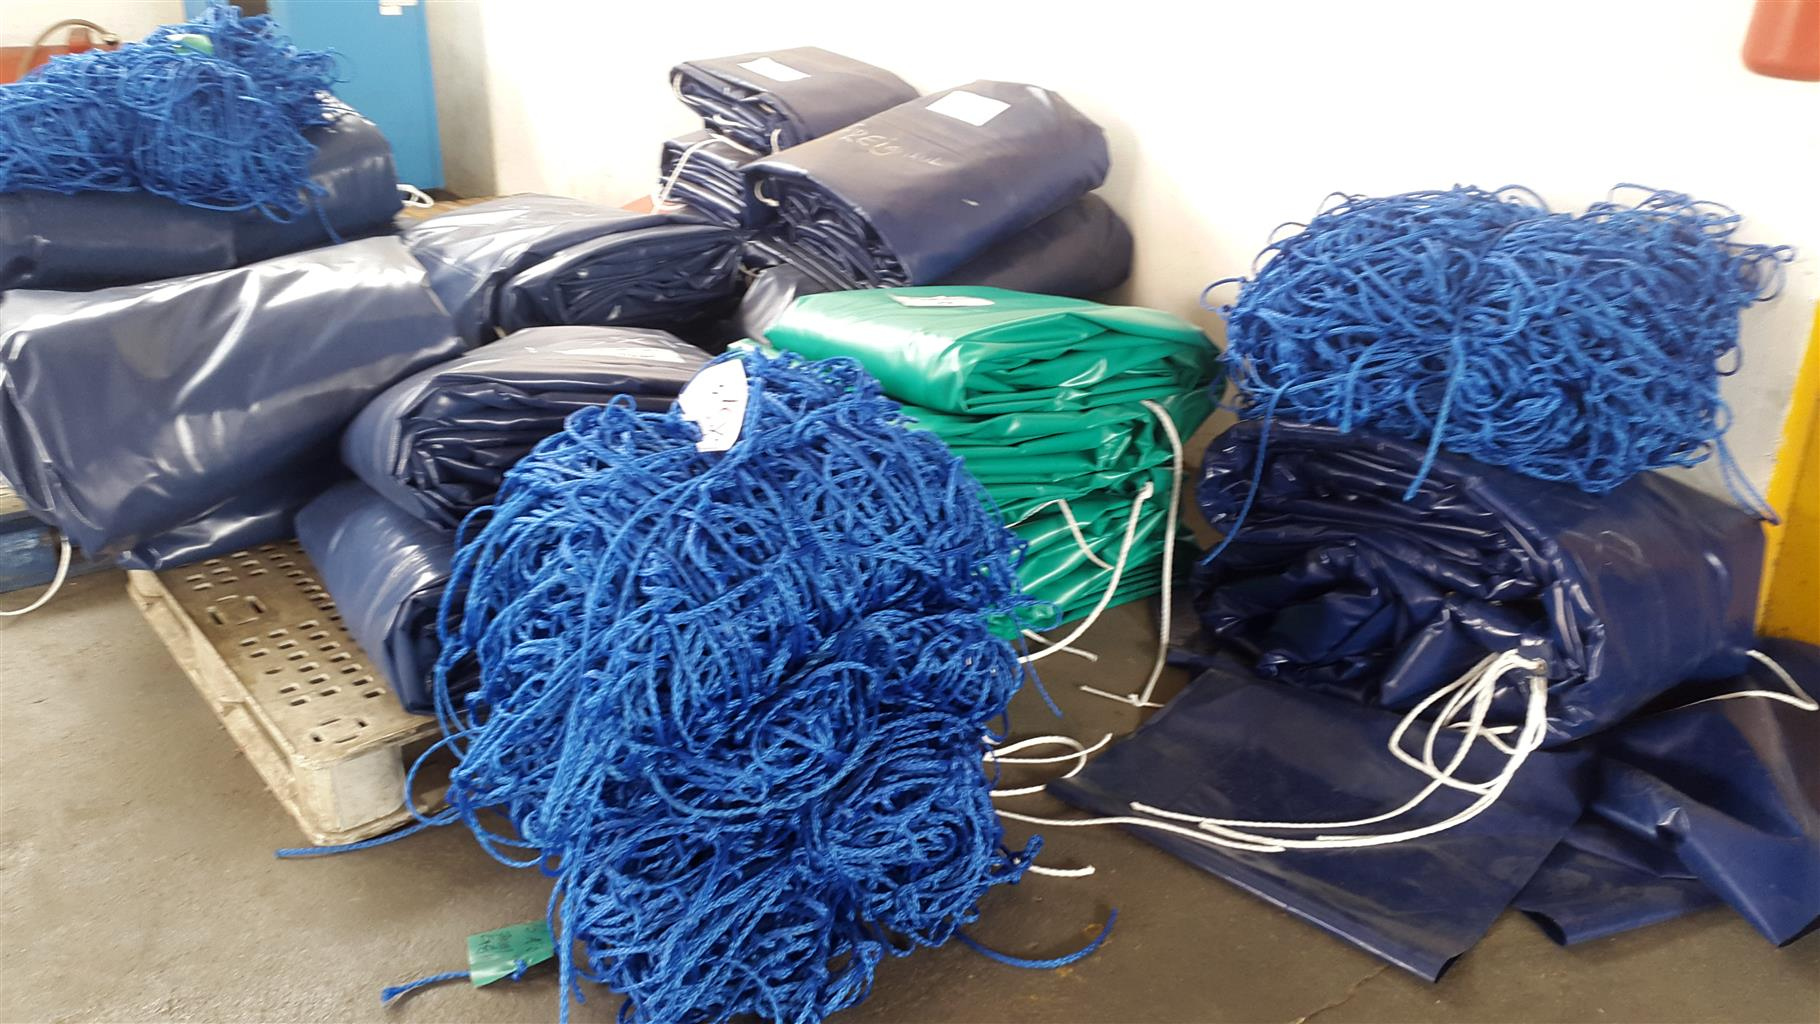 heavy duty truck covers and cargo nets for sale.